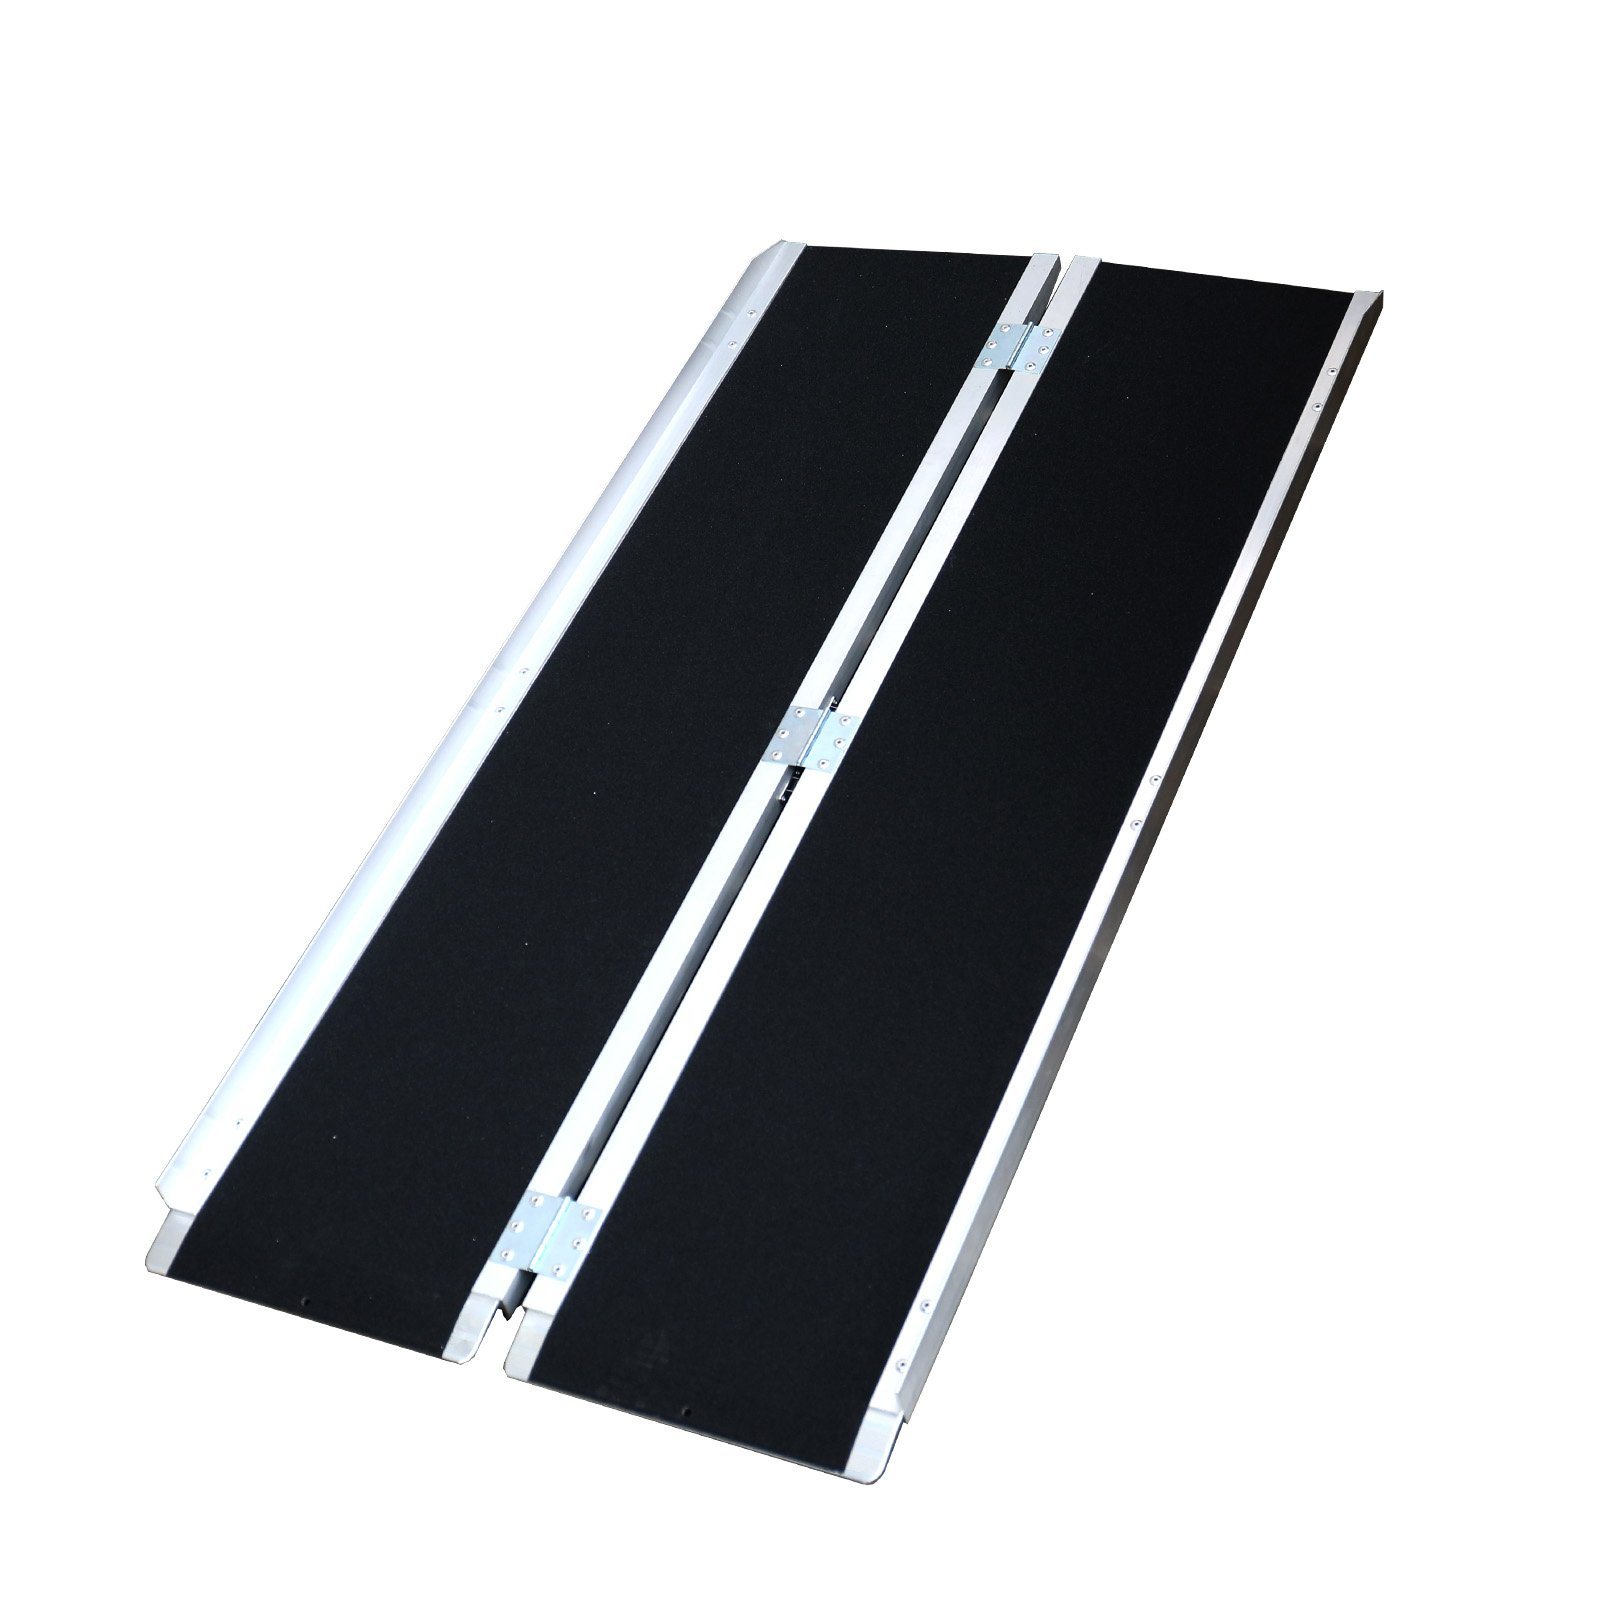 5ft (60''x29'') Aluminum Non-Slip Grip Tape Single-fold Folding Portable Mobility Loading Wheelchair Threshold Access Ramp Handicap Briefcase Scooters